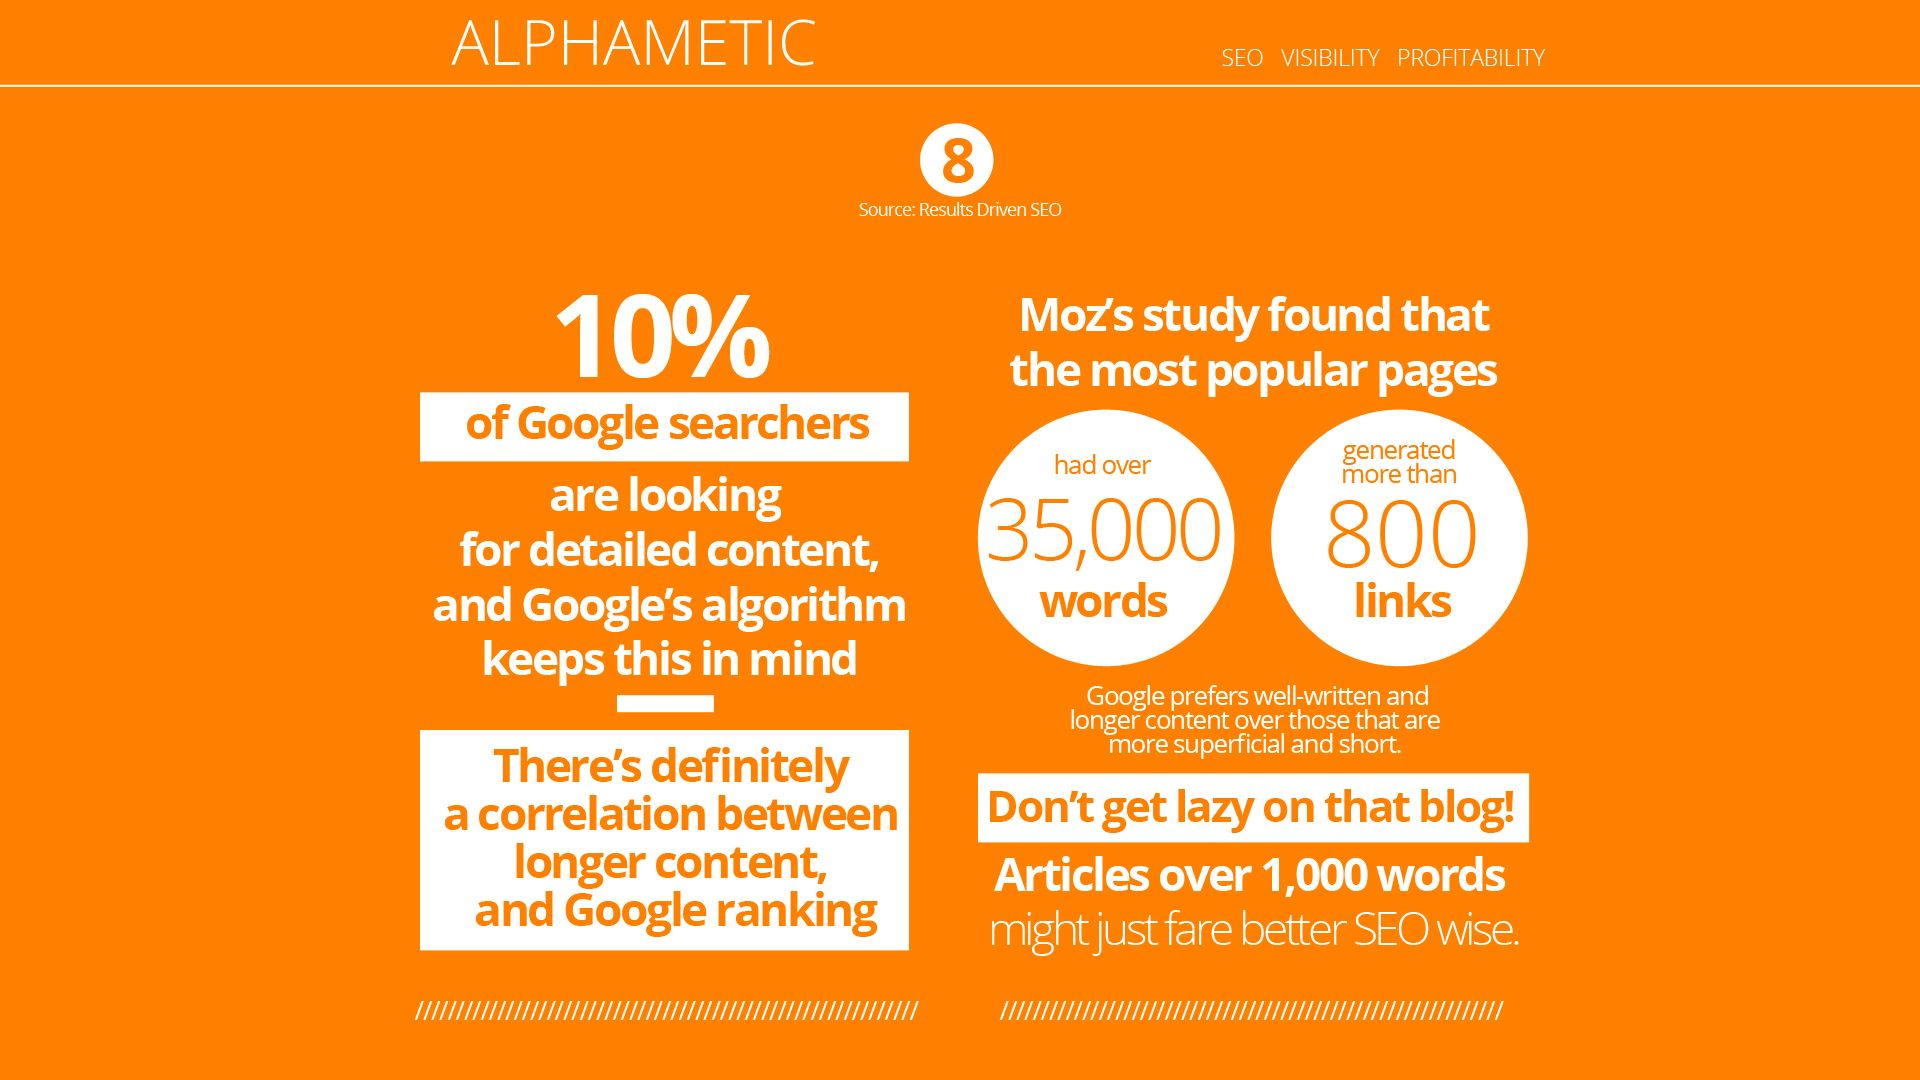 10% of google searchers are looking for detailed content